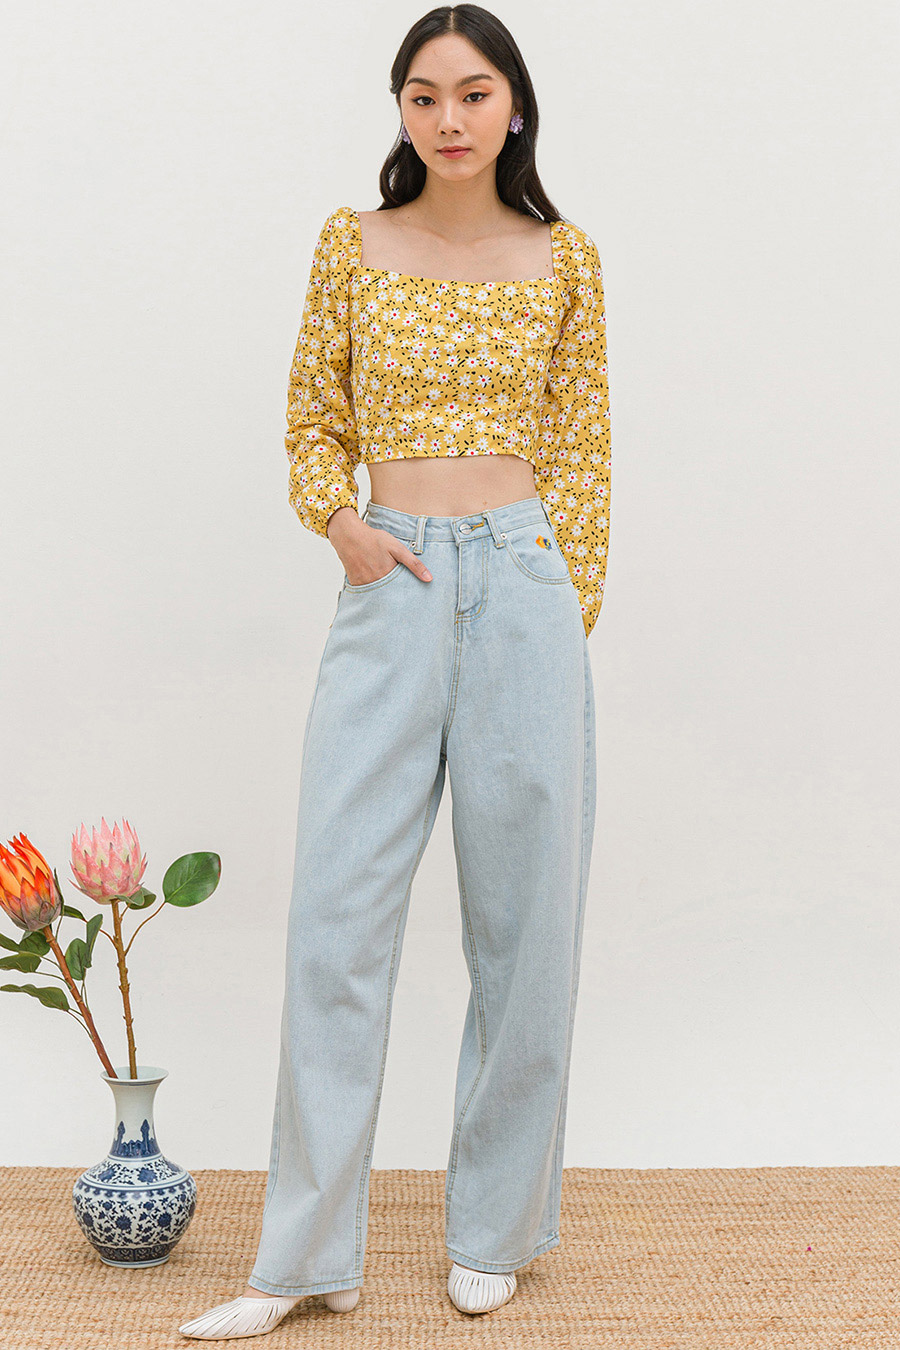 *RESTOCKED* MASAE PANTS - LIGHT WASH